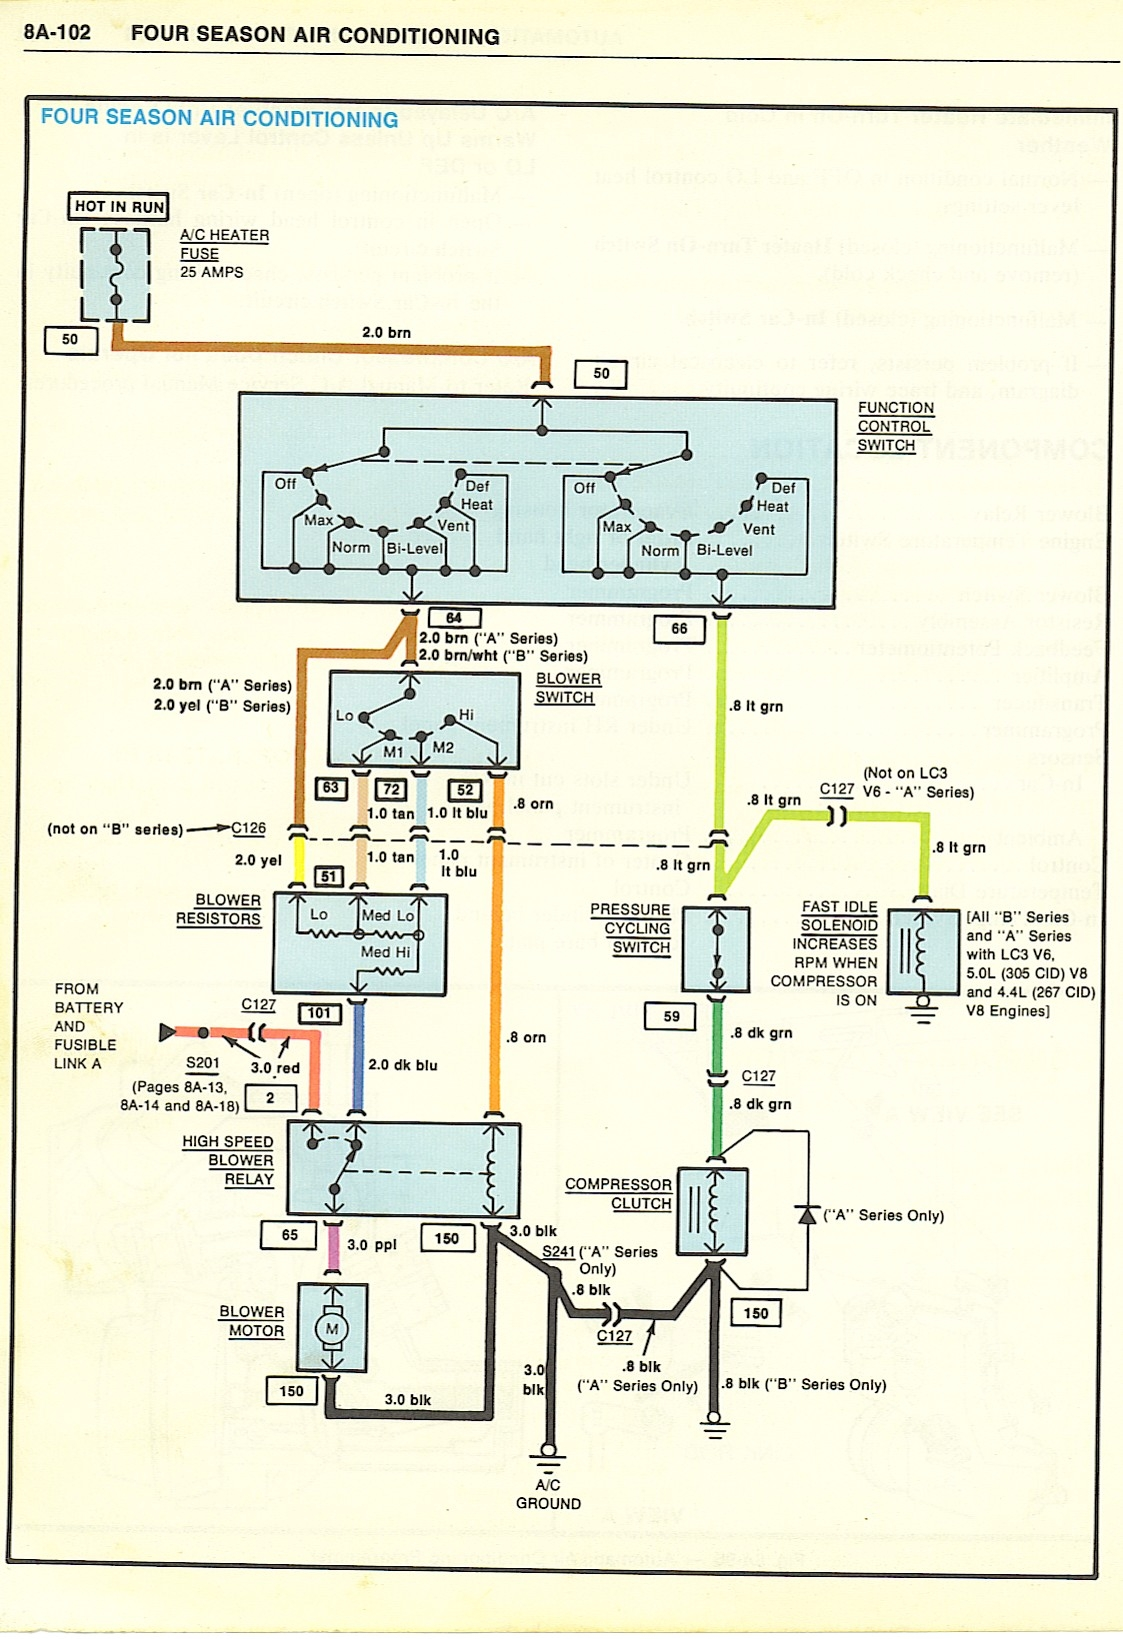 1968 FourSeasonAirConditioner chevy diagrams ac wiring diagram at virtualis.co